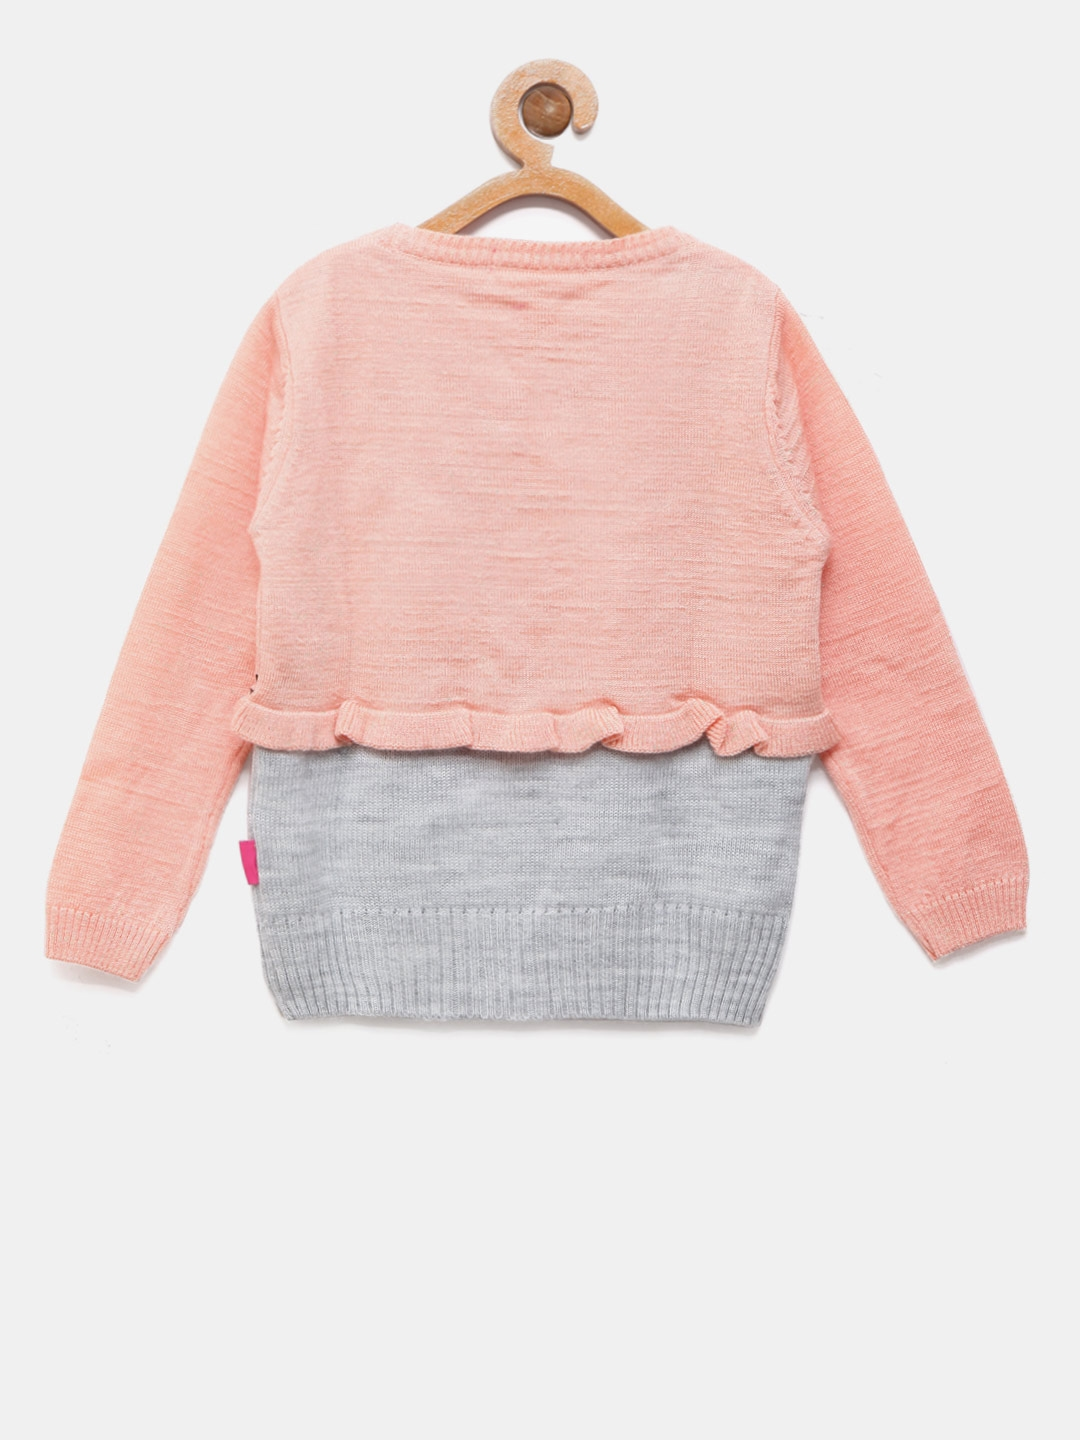 97e859537867 Buy Wingsfield Girls Peach Coloured   Grey Melange Printed Sweater ...